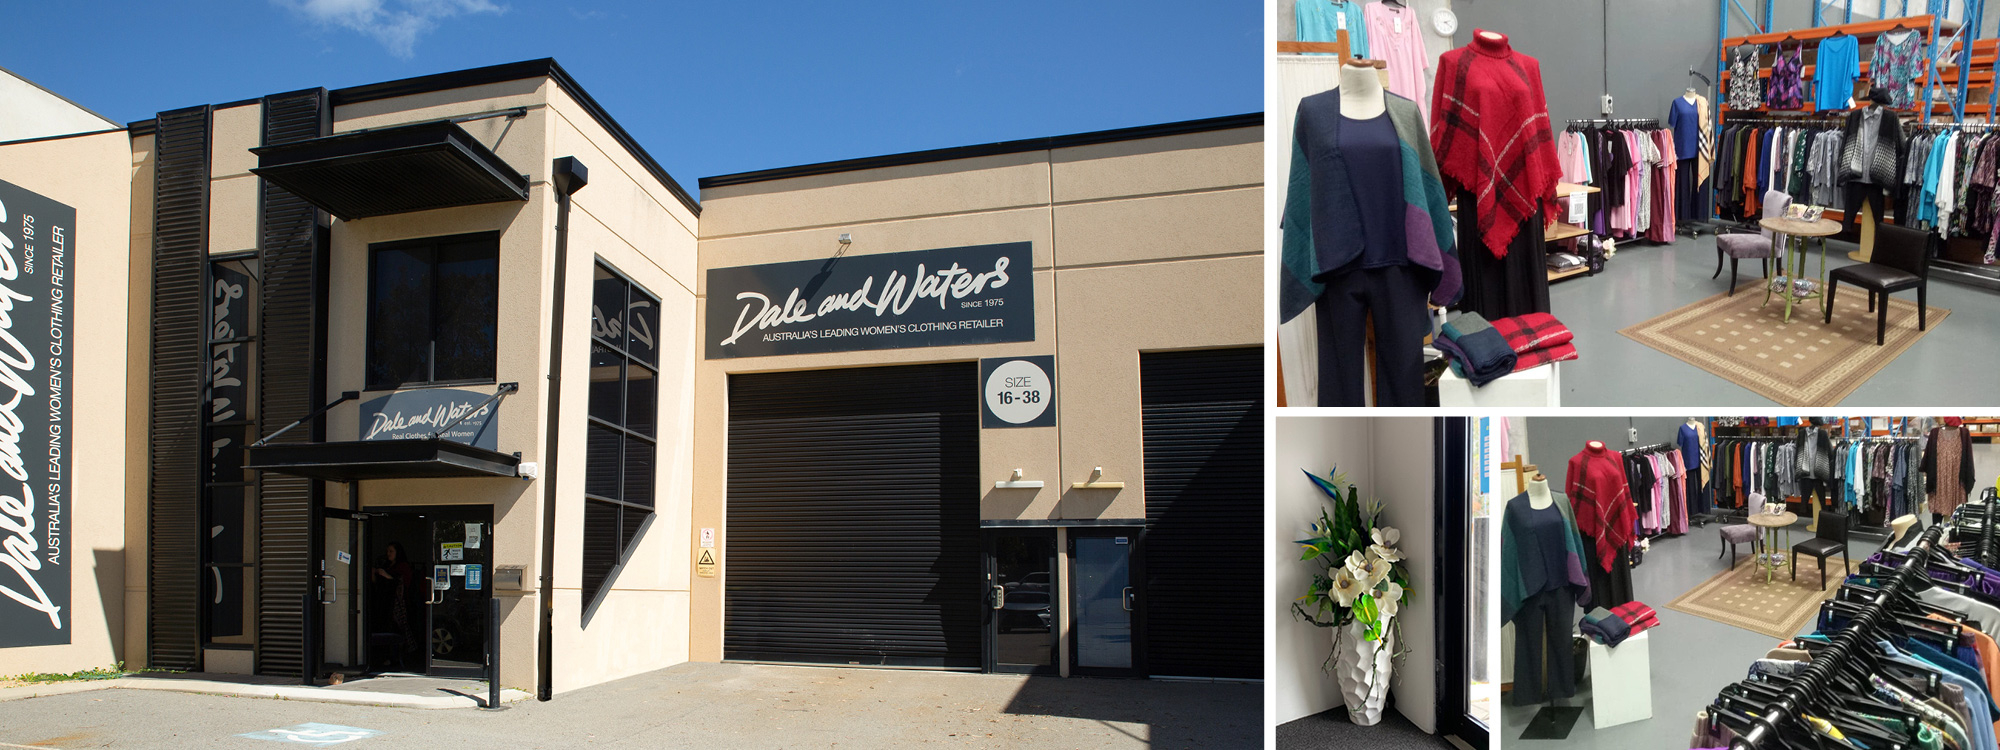 Warehouse outlet is open to the public